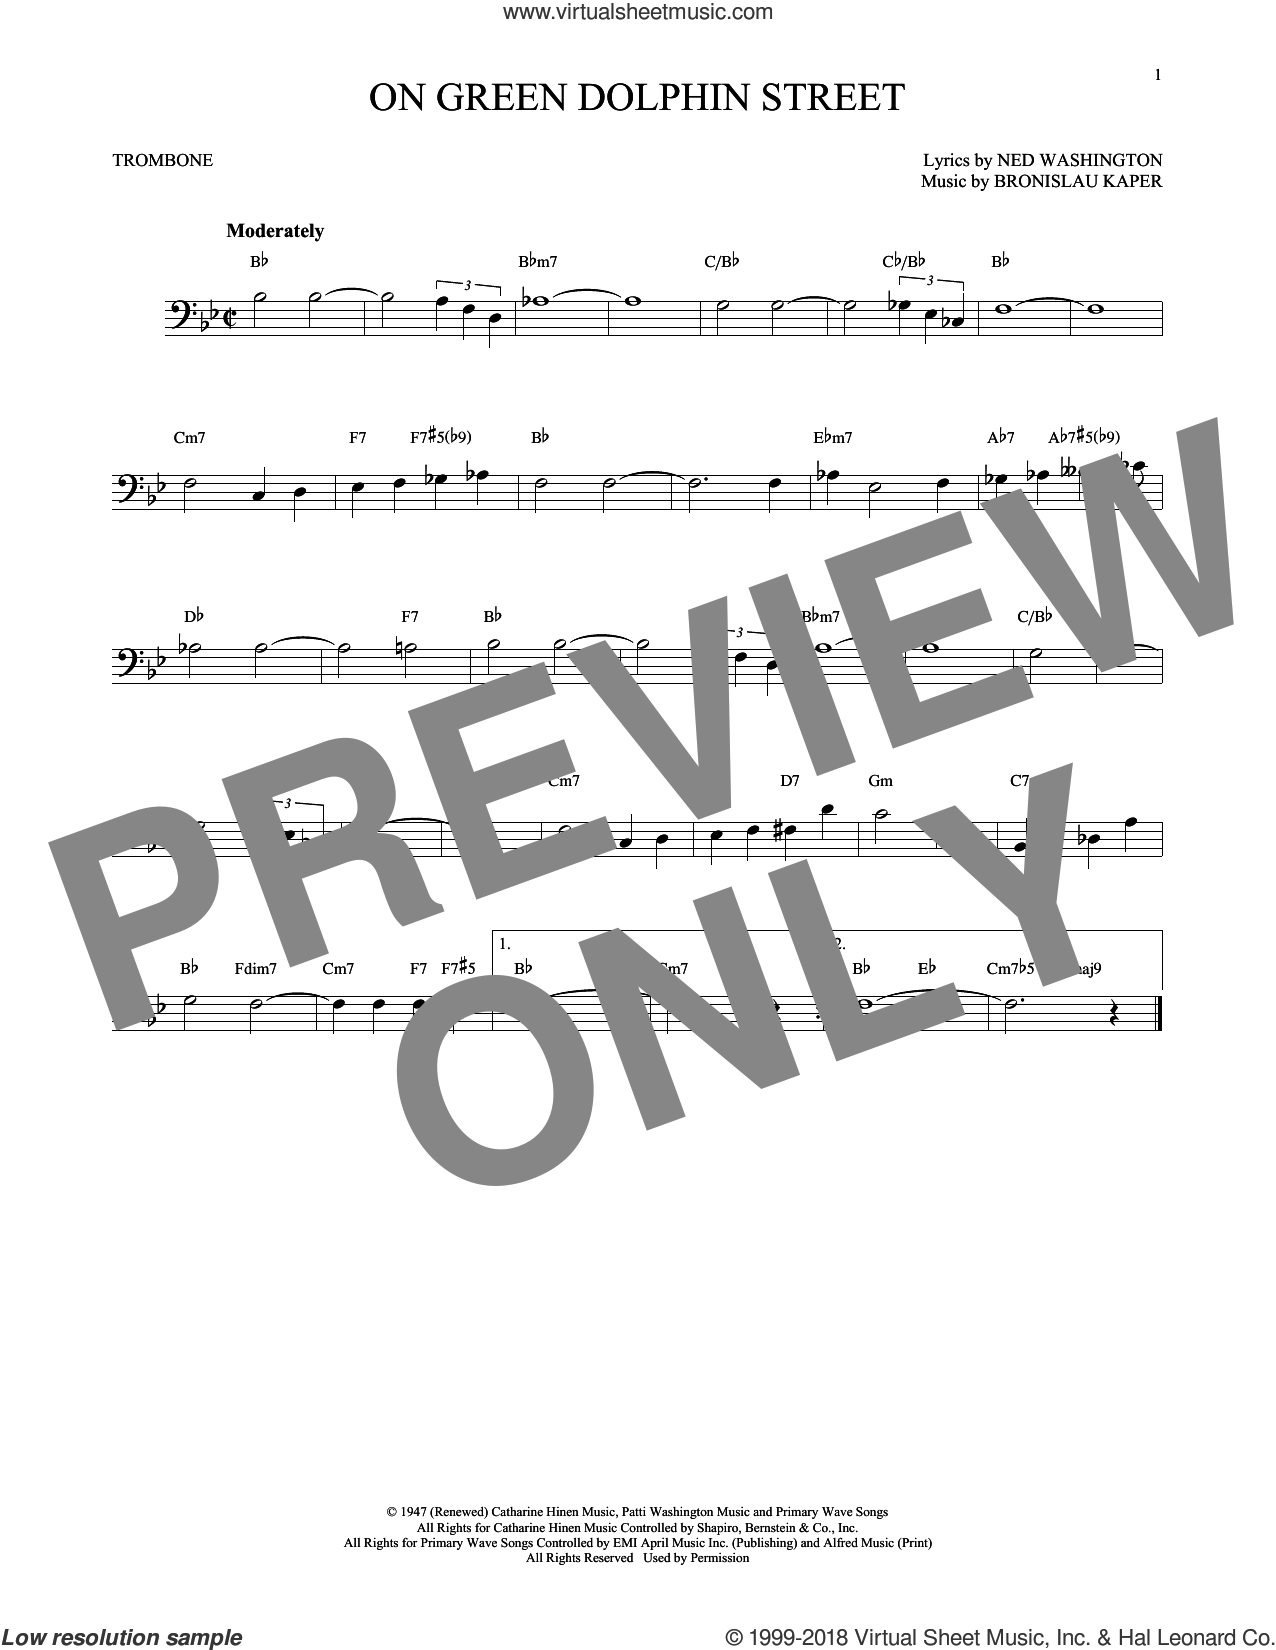 On Green Dolphin Street sheet music for trombone solo by Ned Washington and Bronislau Kaper, intermediate skill level